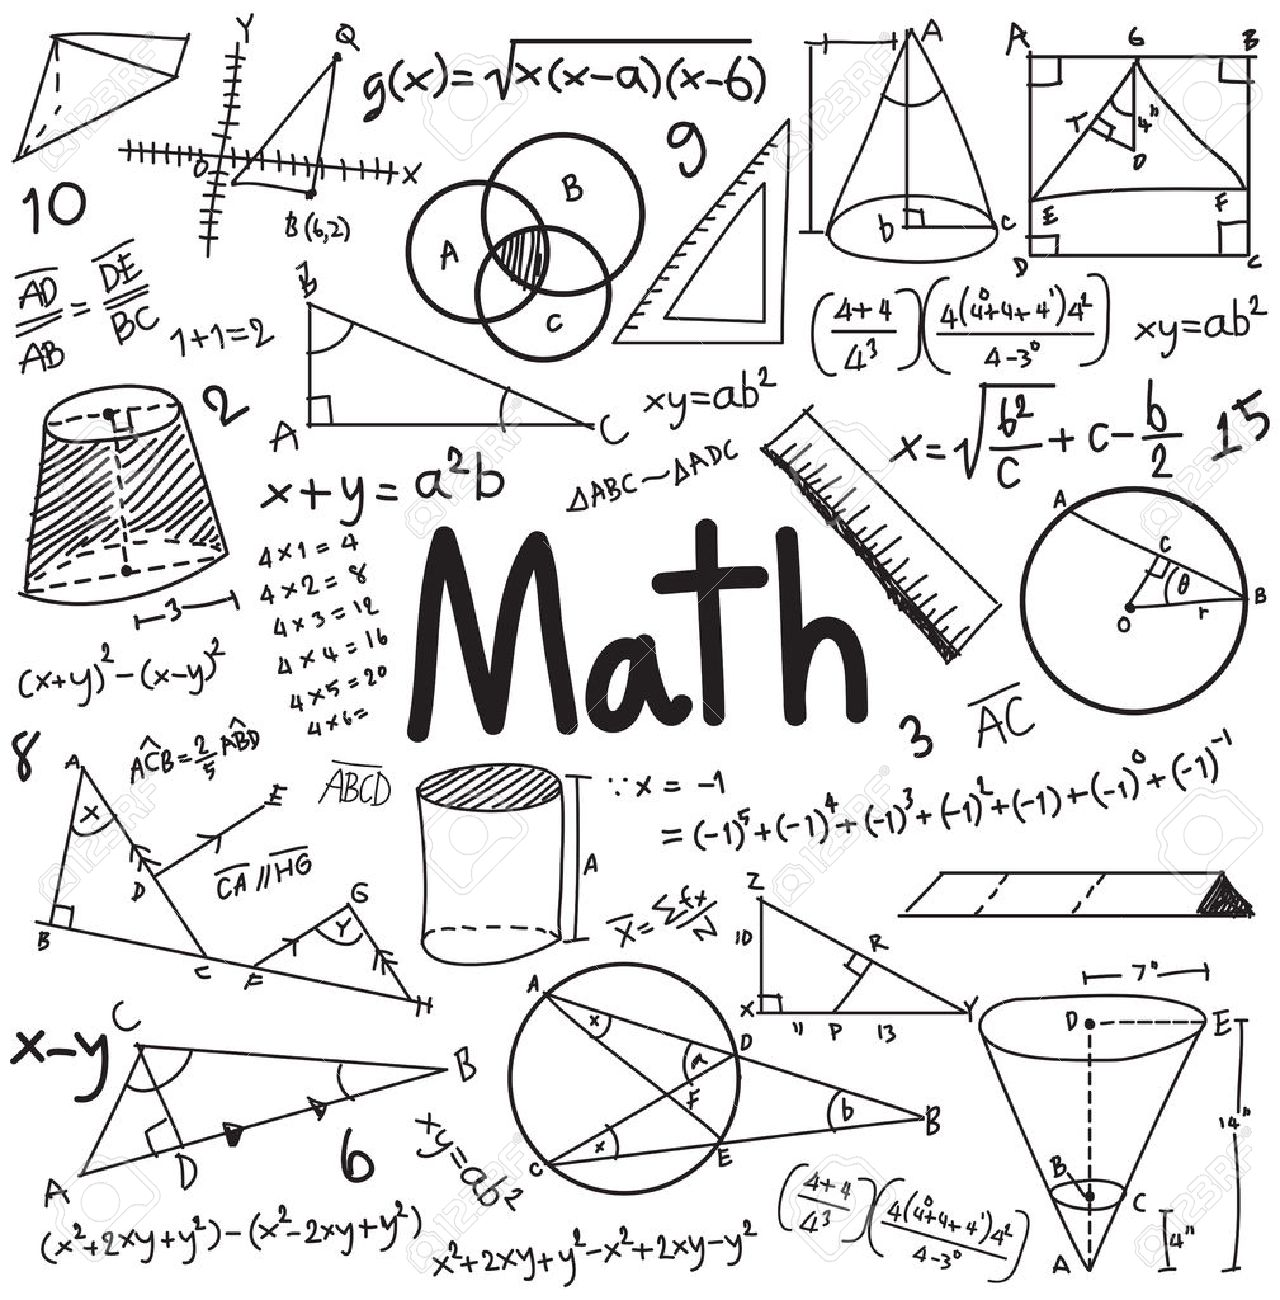 Math theory and mathematical formula equation doodle handwriting math theory and mathematical formula equation doodle handwriting icon in white isolated background with hand drawn ccuart Image collections